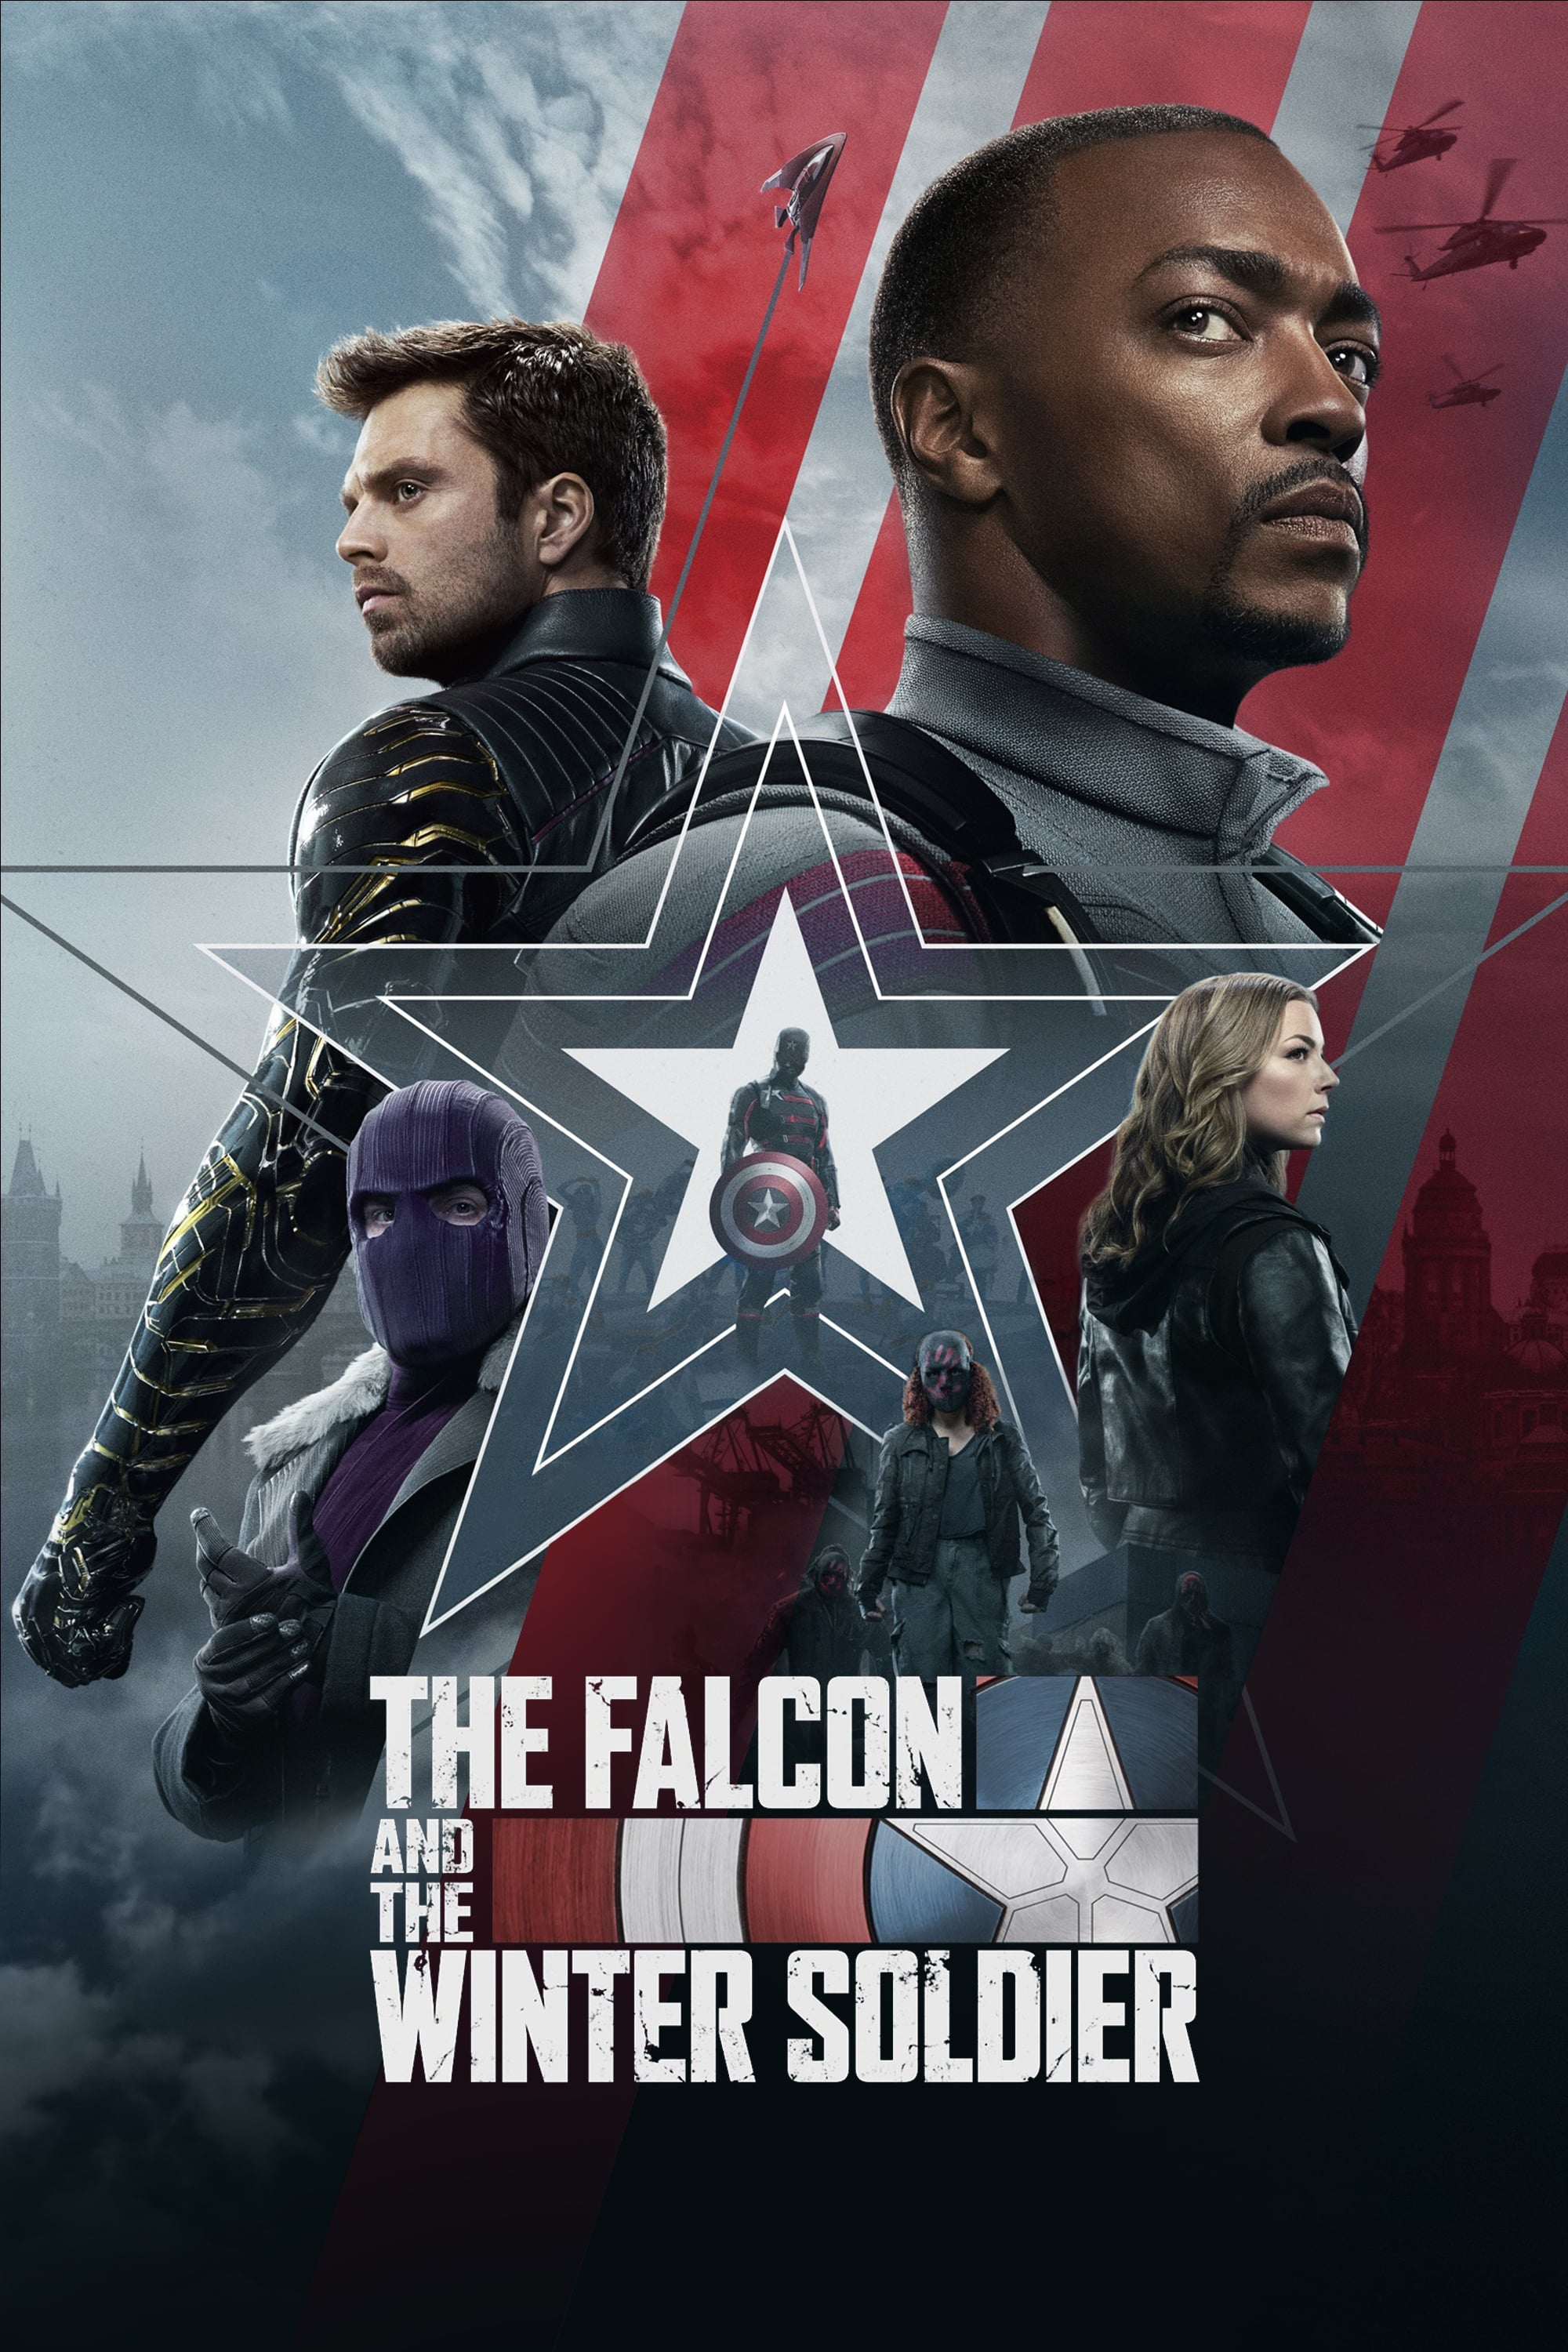 Marvel's The Falcon and the Winter Soldier